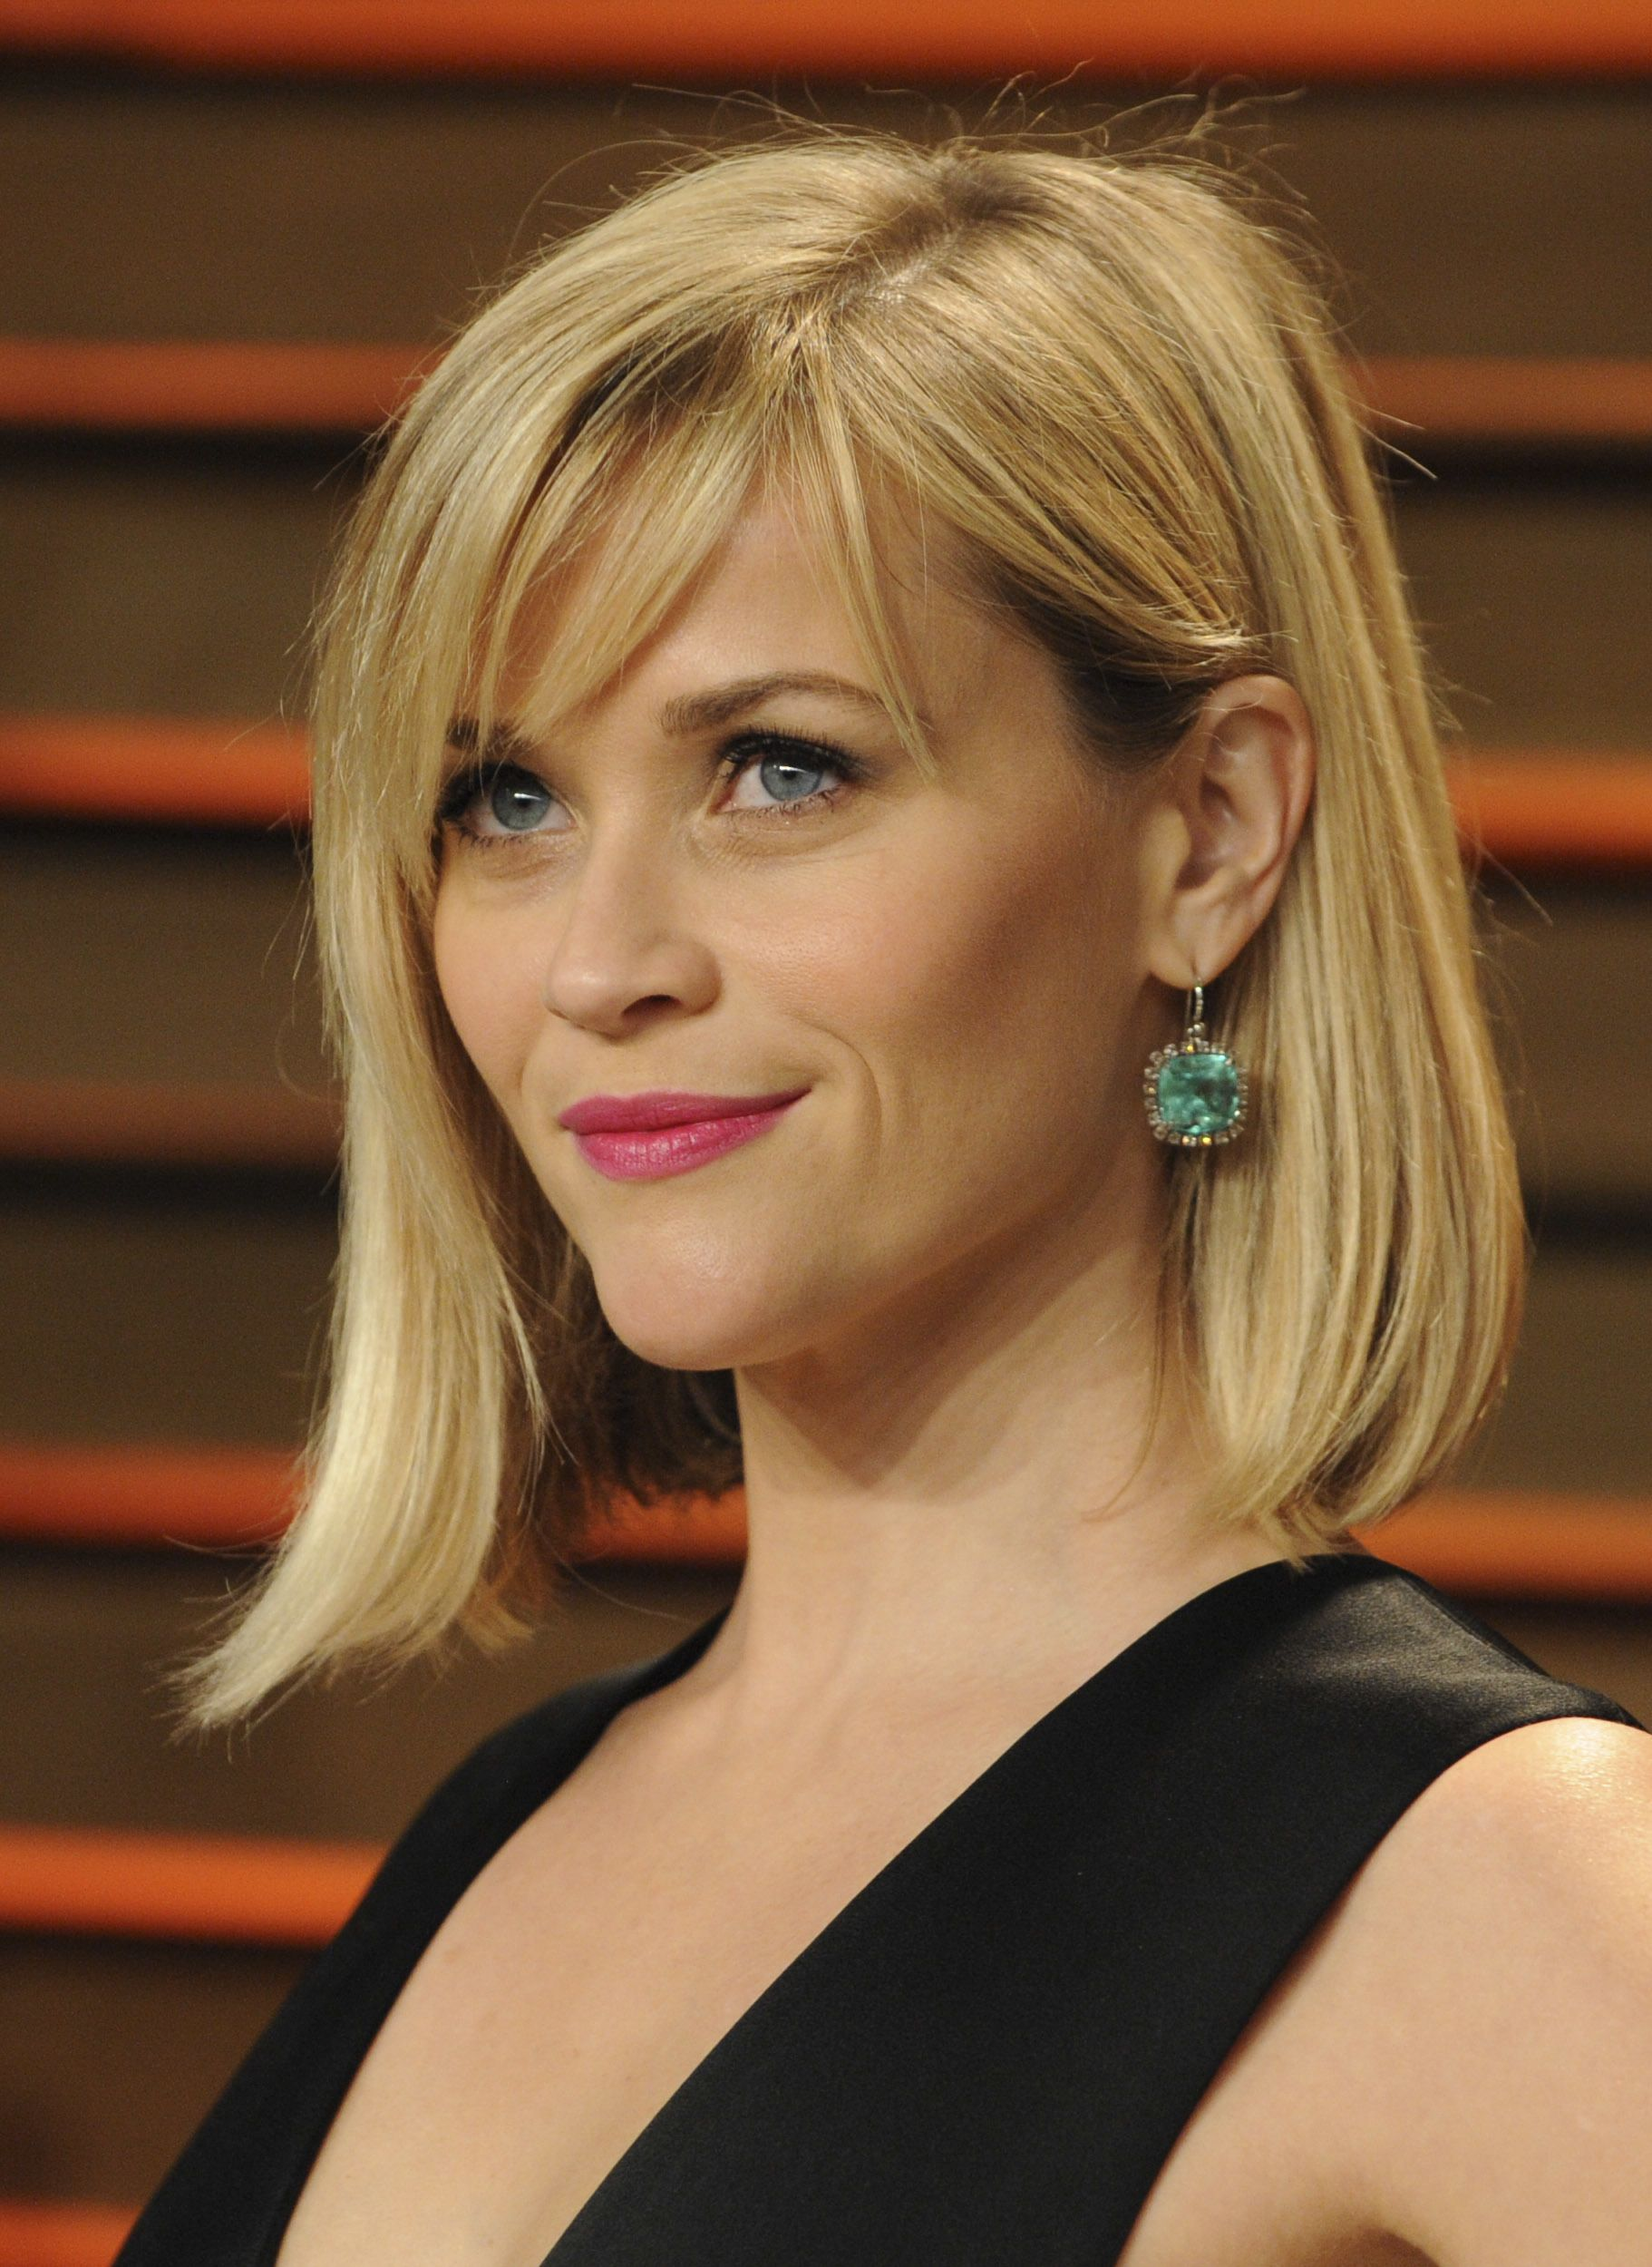 Reese Witherspoon Recent Haircut Google Search Hair Beauty